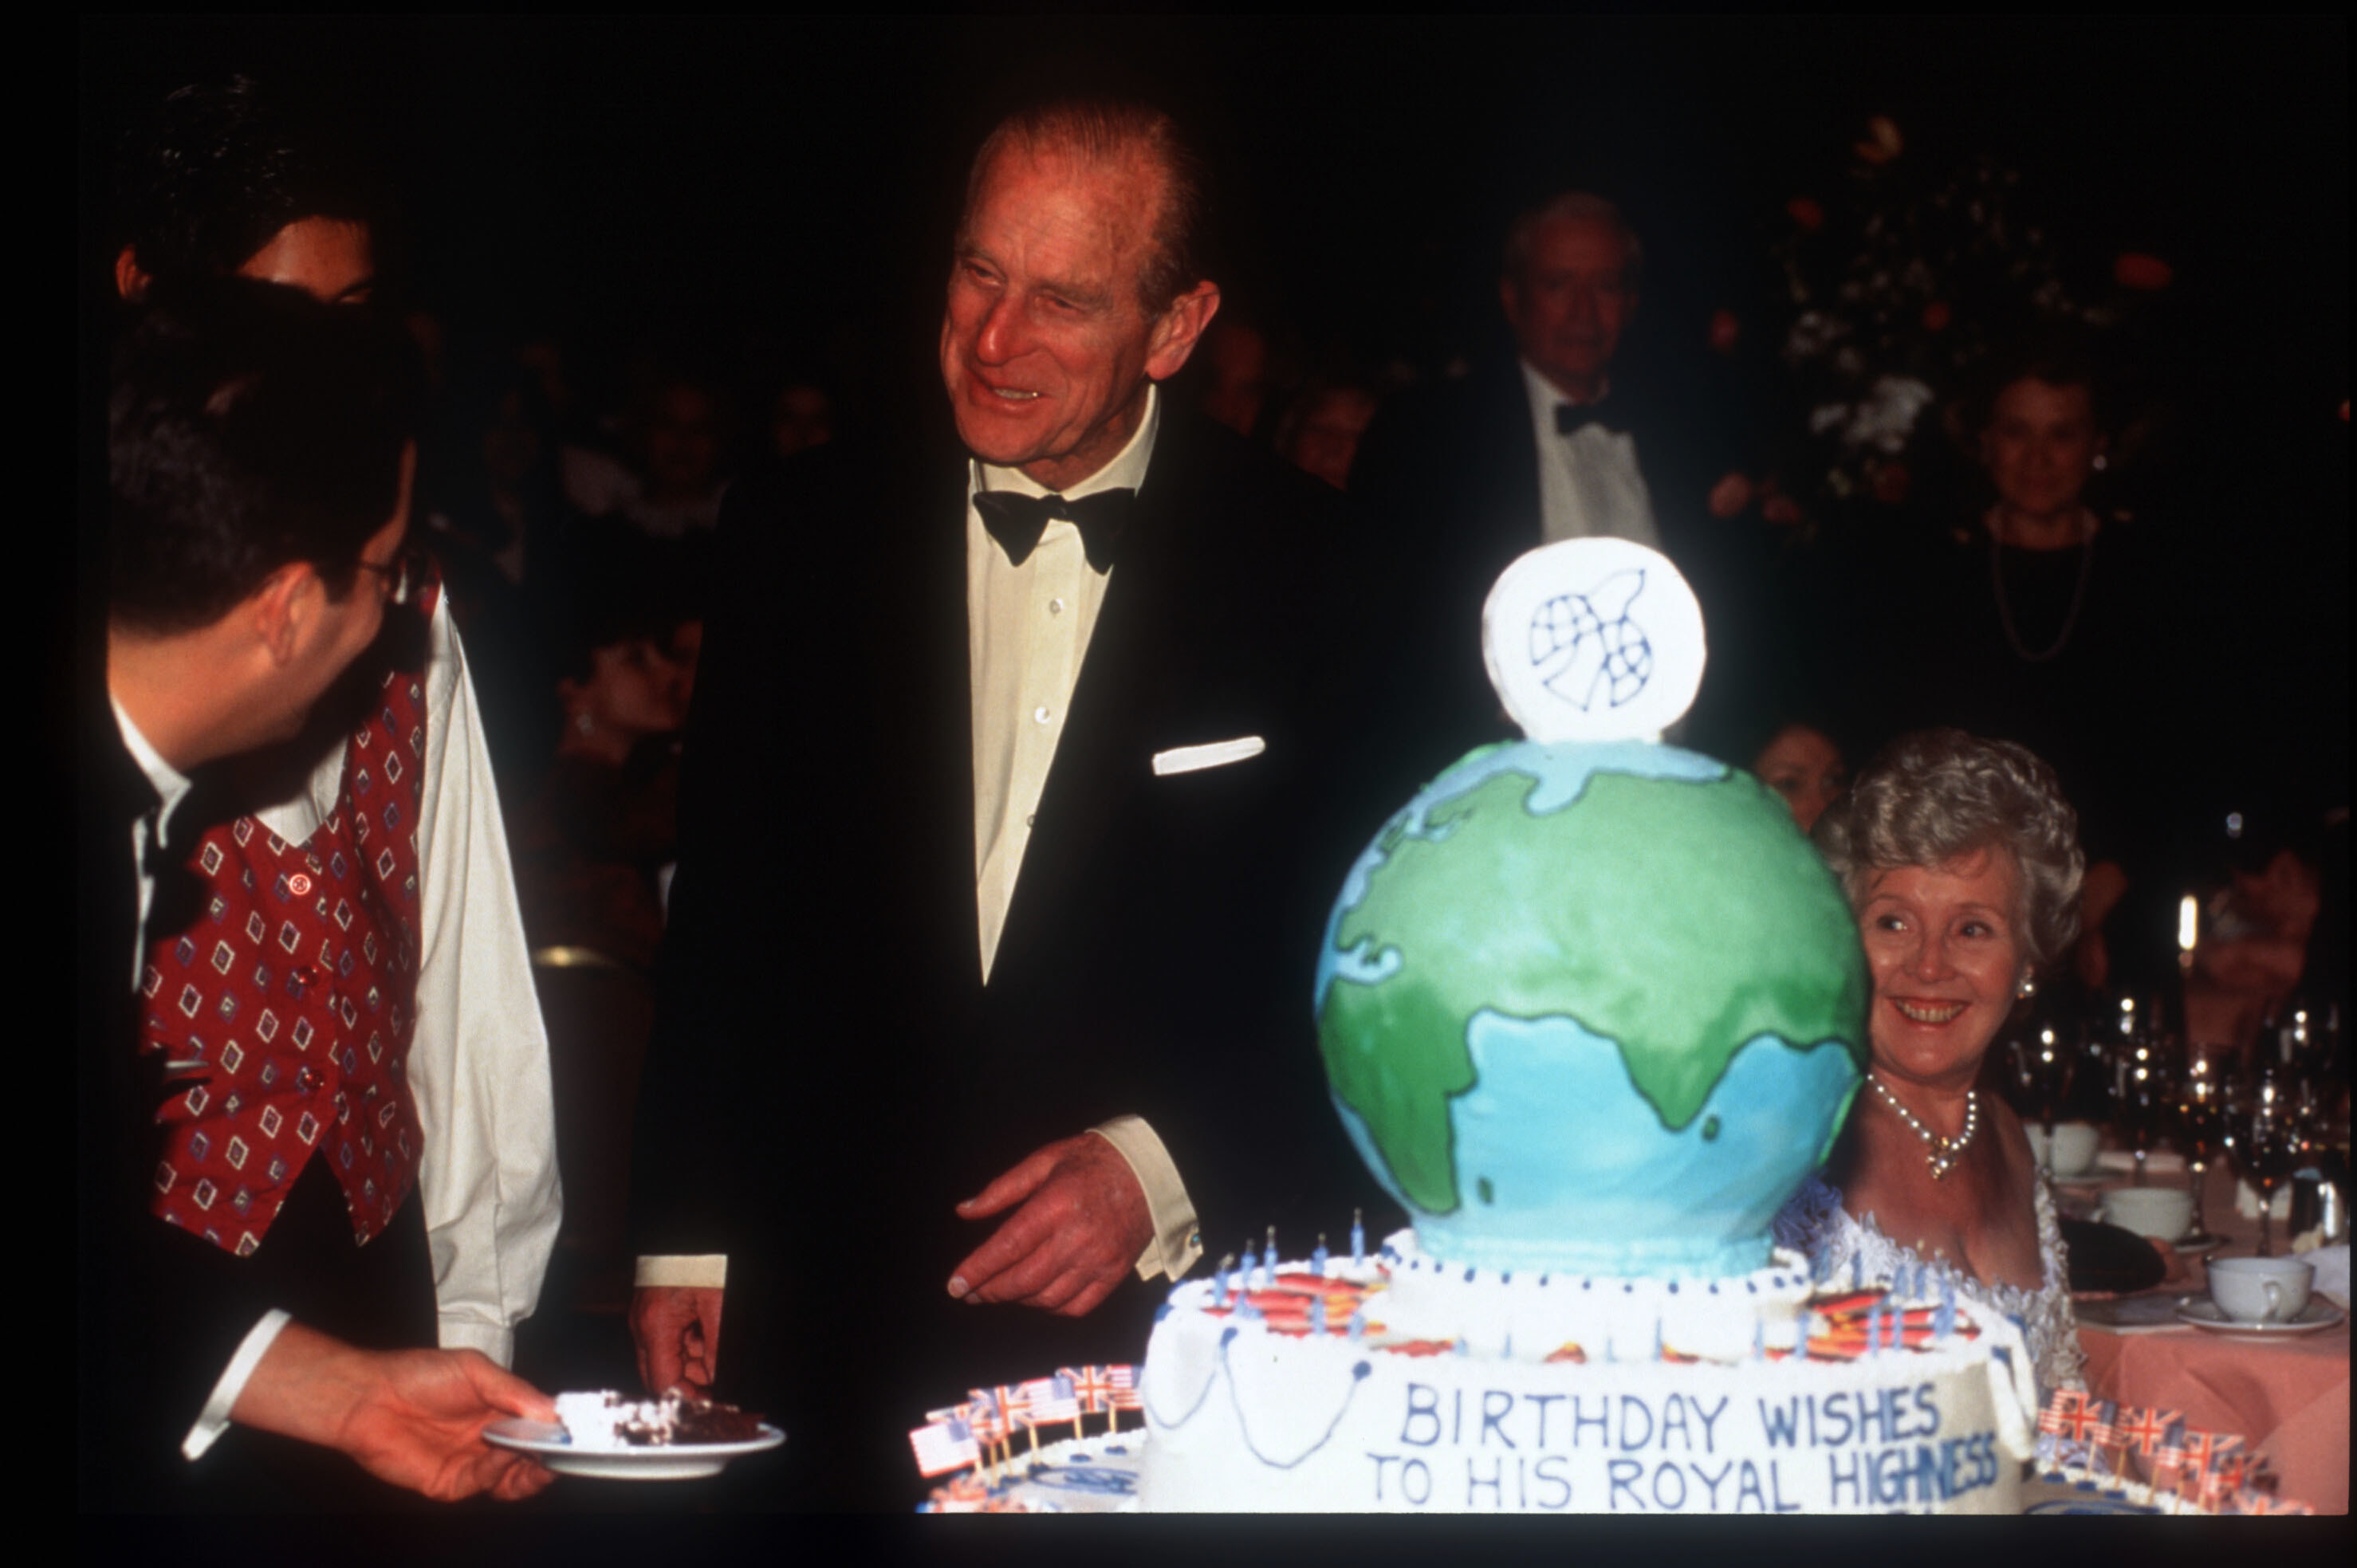 Prince Philip, in a tuxedo, stands behind a cake shaped like a globe